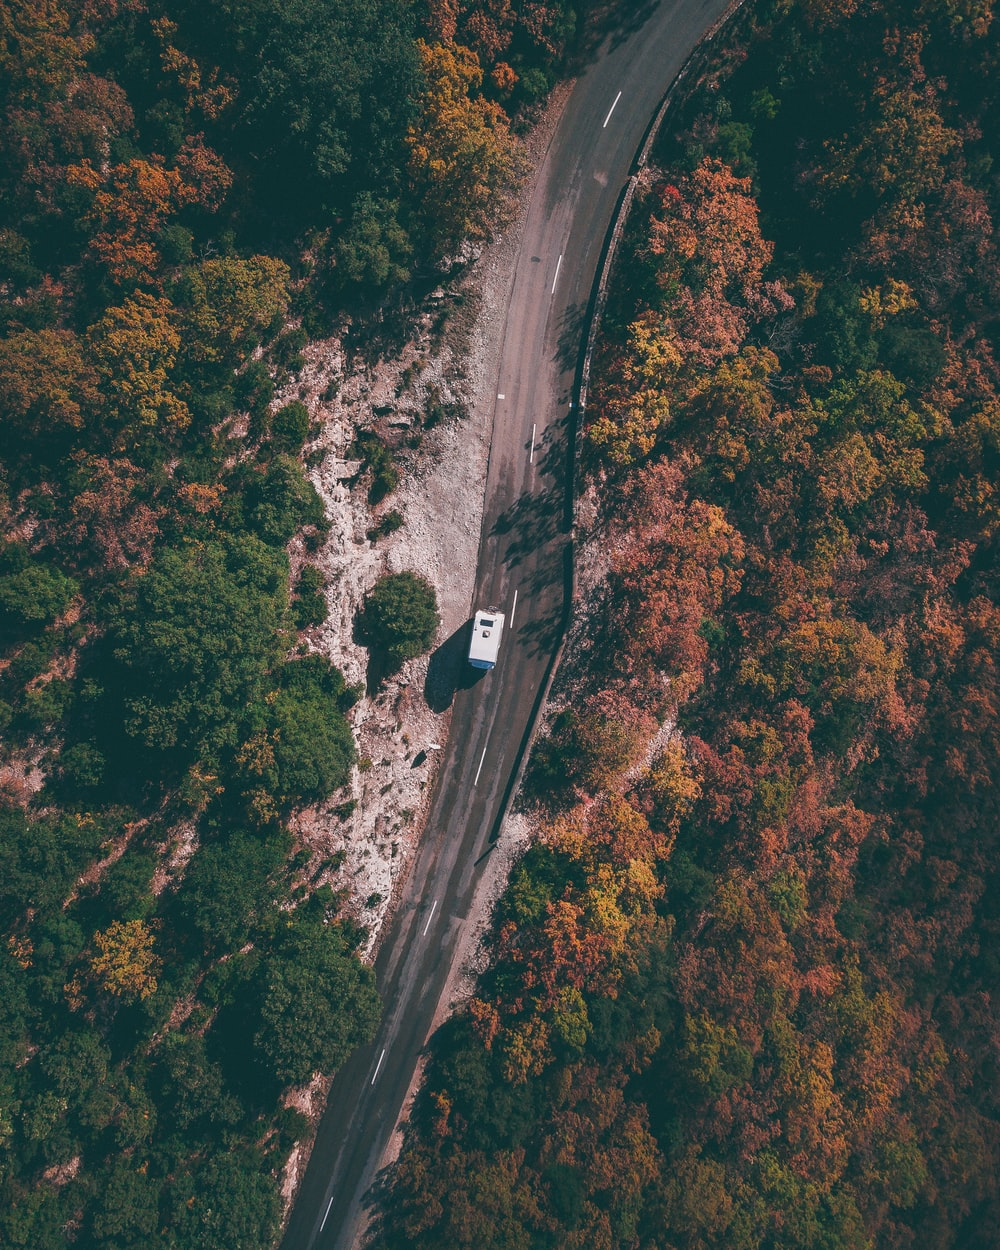 aerial photography of white car passing by forest